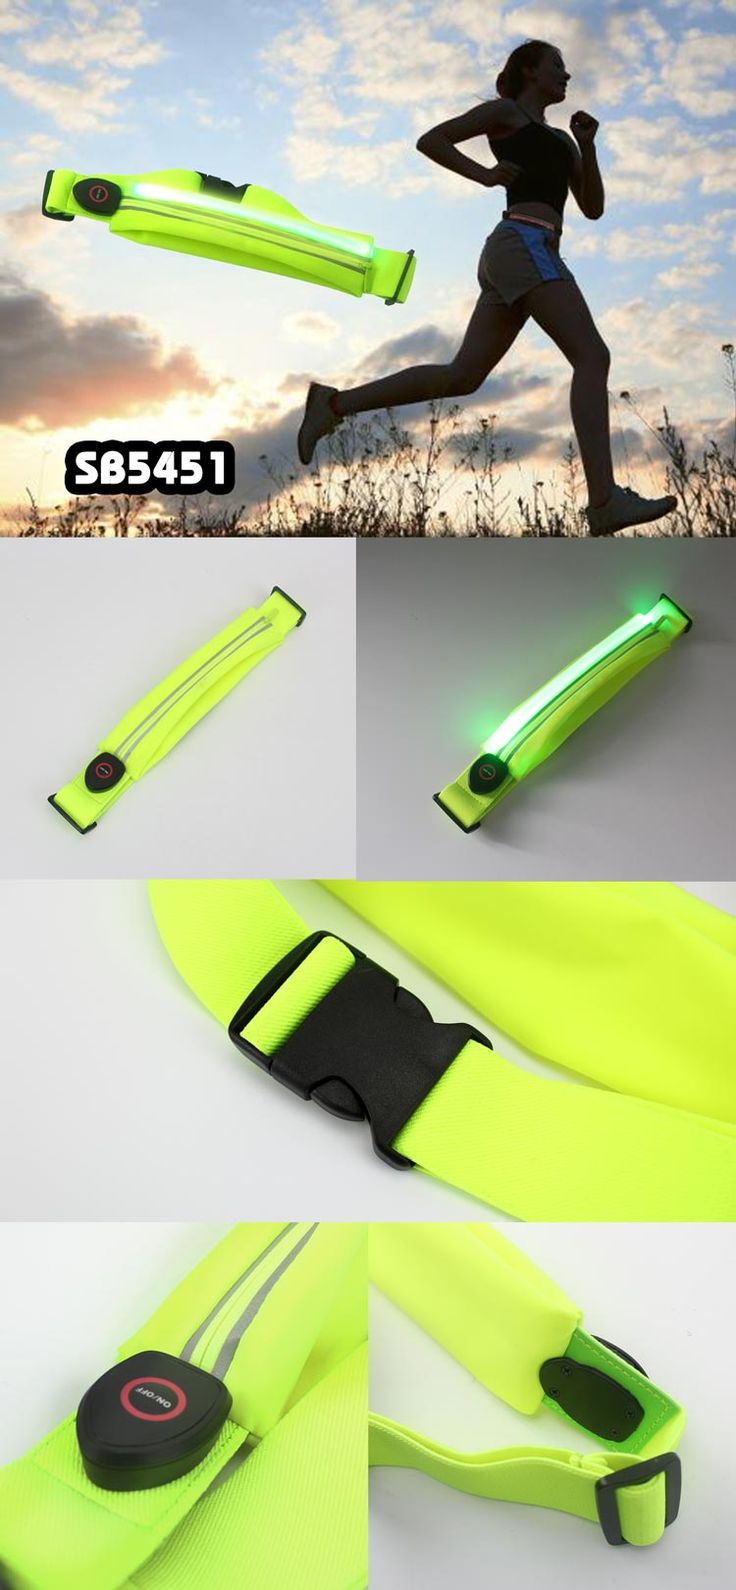 Rechargable Led Sport Waist Bag Specifications: material: lycra+elastic cloth size: 22*4cm colors: green/fushcia/light green safety sporting waist bag, large capacity for phones/changes/keys etc. led is rechargable logo printing is available www.ideagroupigm.com